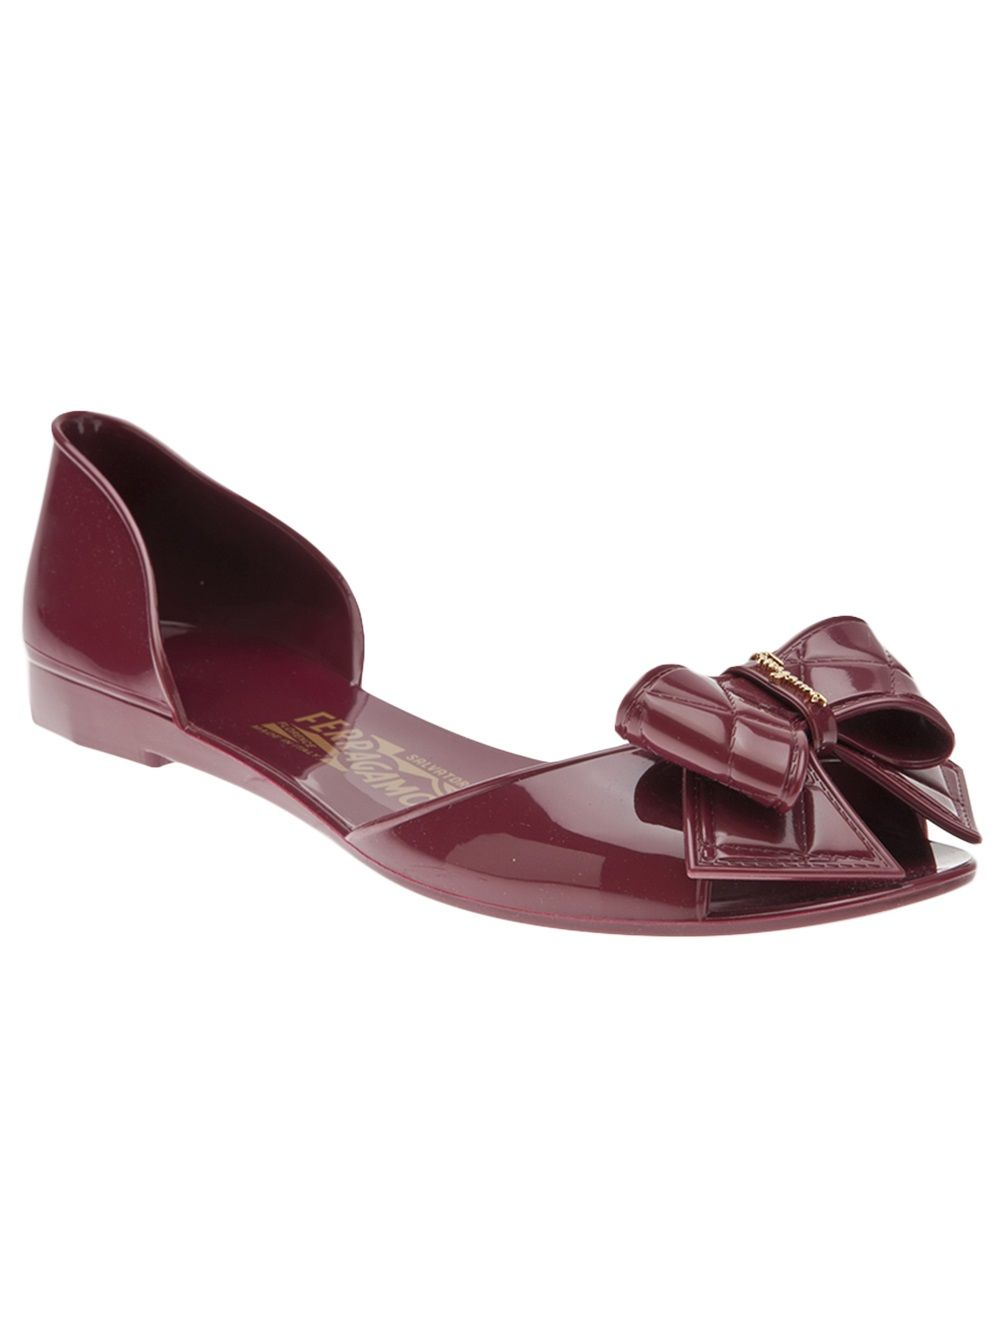 b9b4a0b9c Salvatore Ferragamo Jelly Flat - Hu s Shoes - Farfetch.com